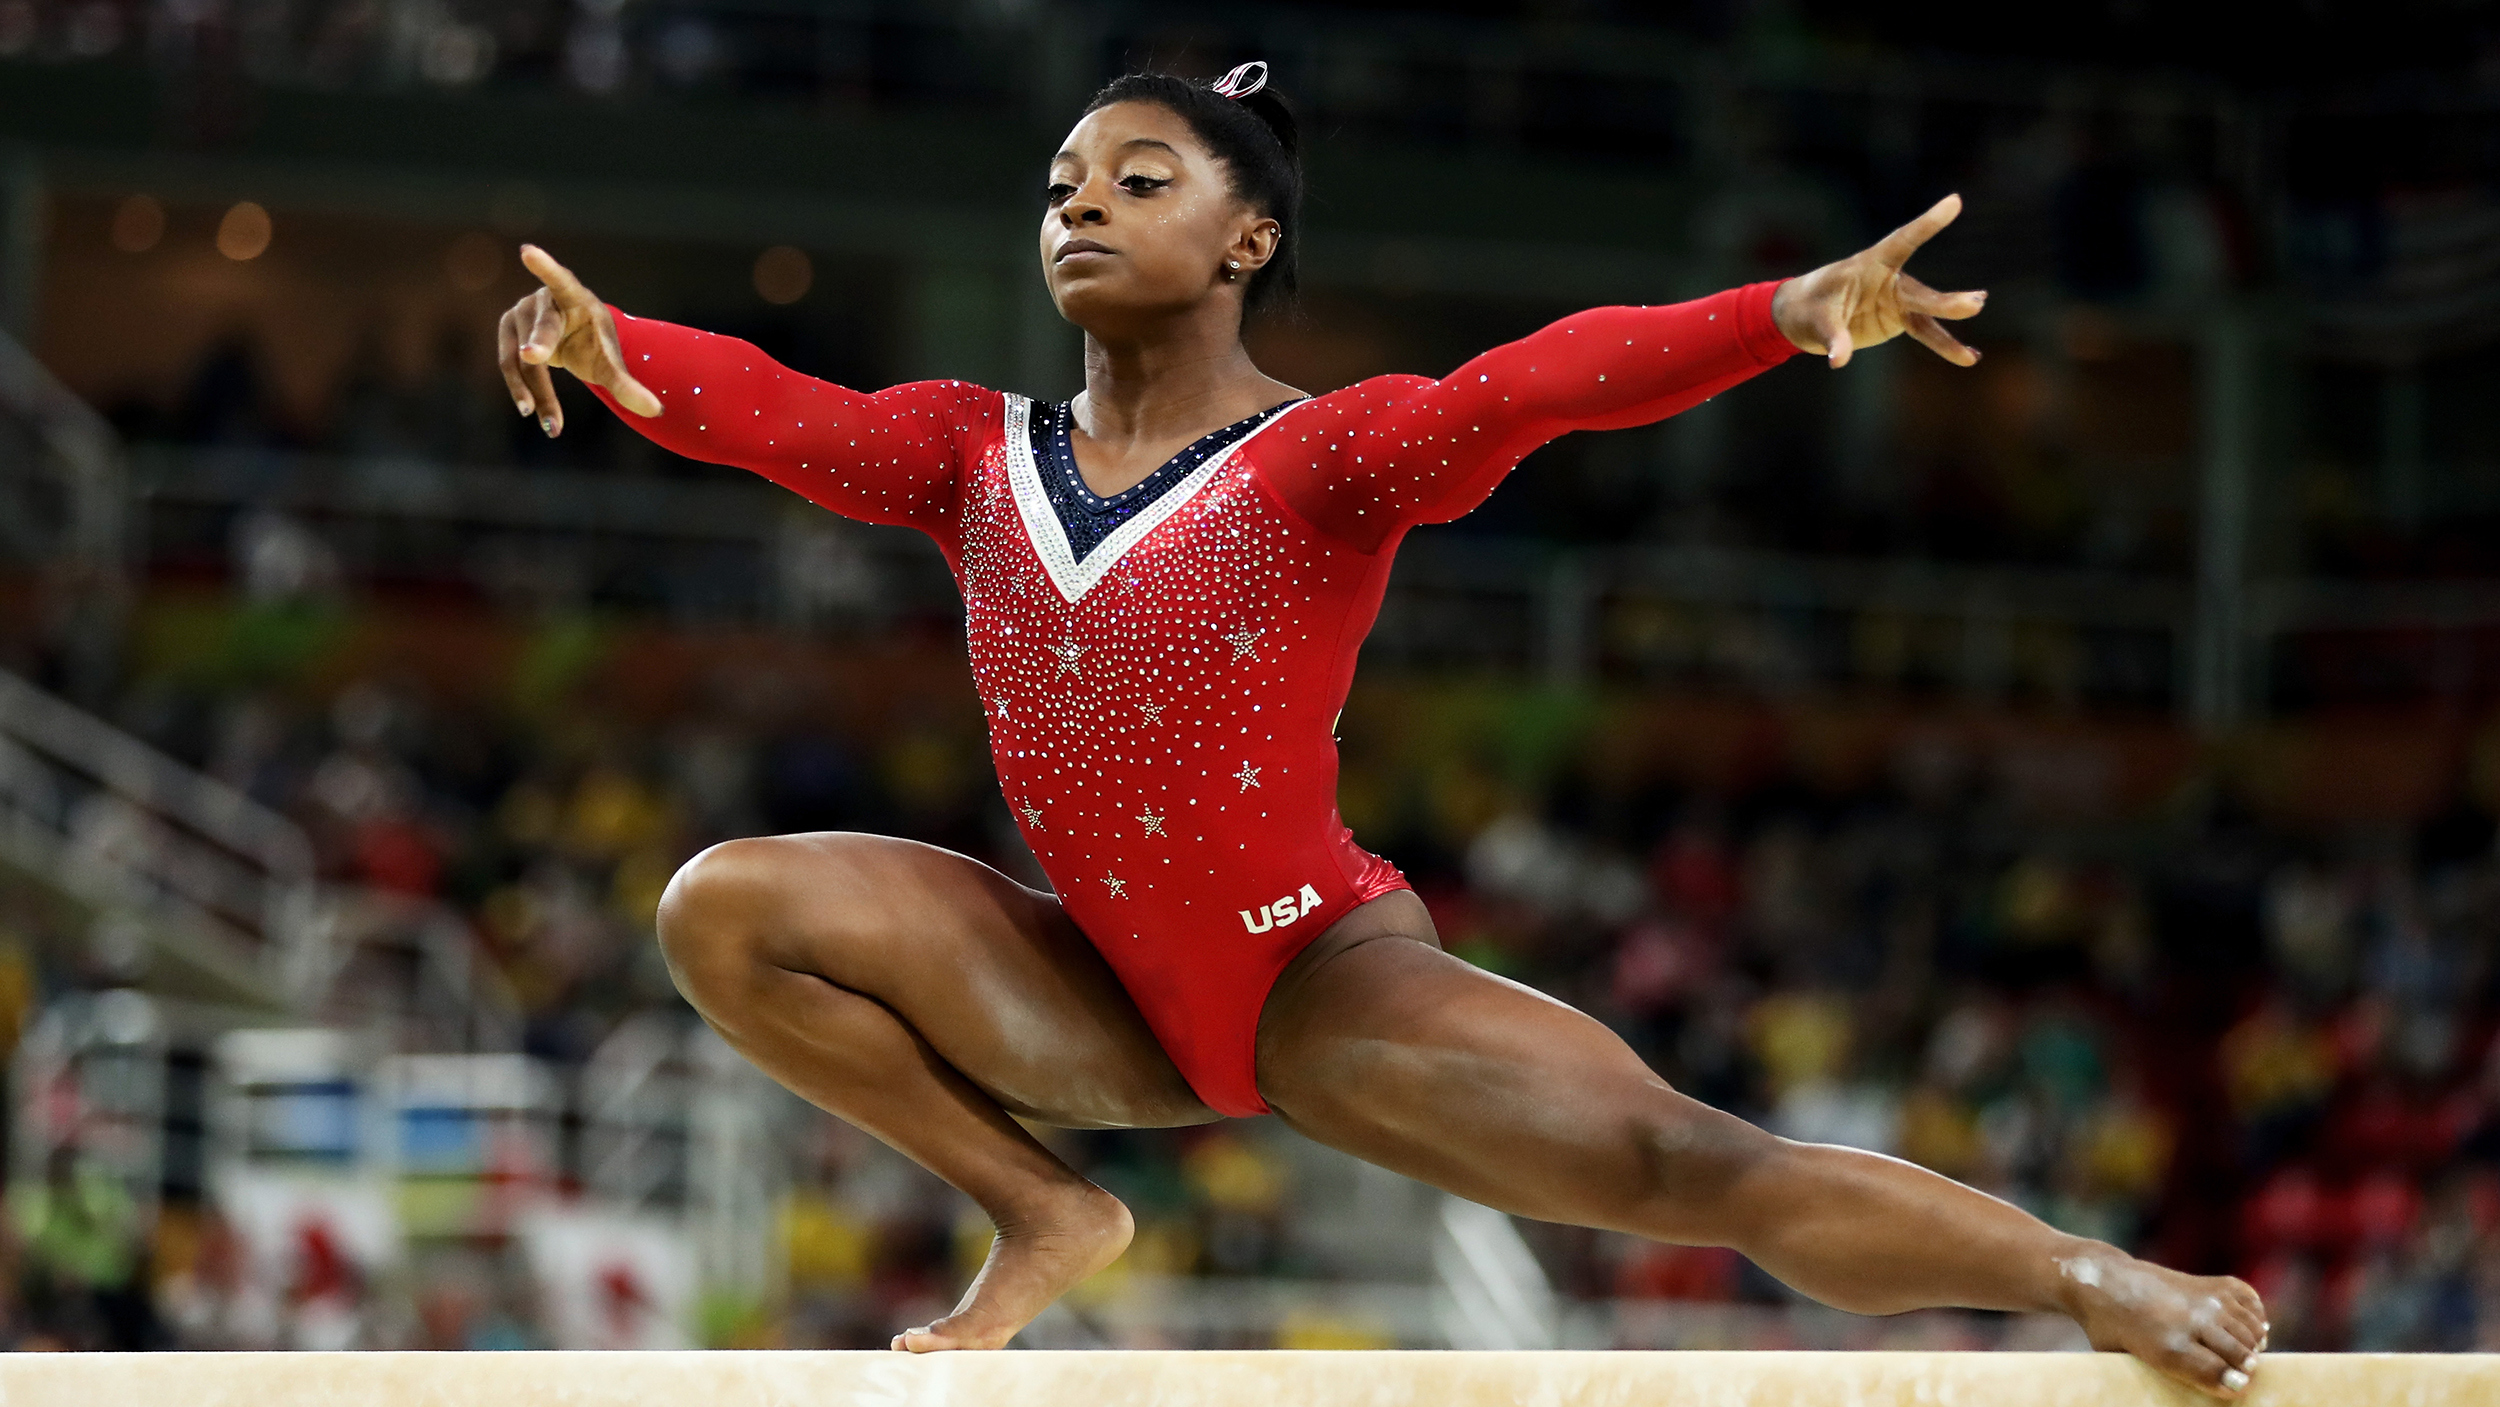 Simone Biles nudes (54 fotos), hot Porno, YouTube, butt 2018